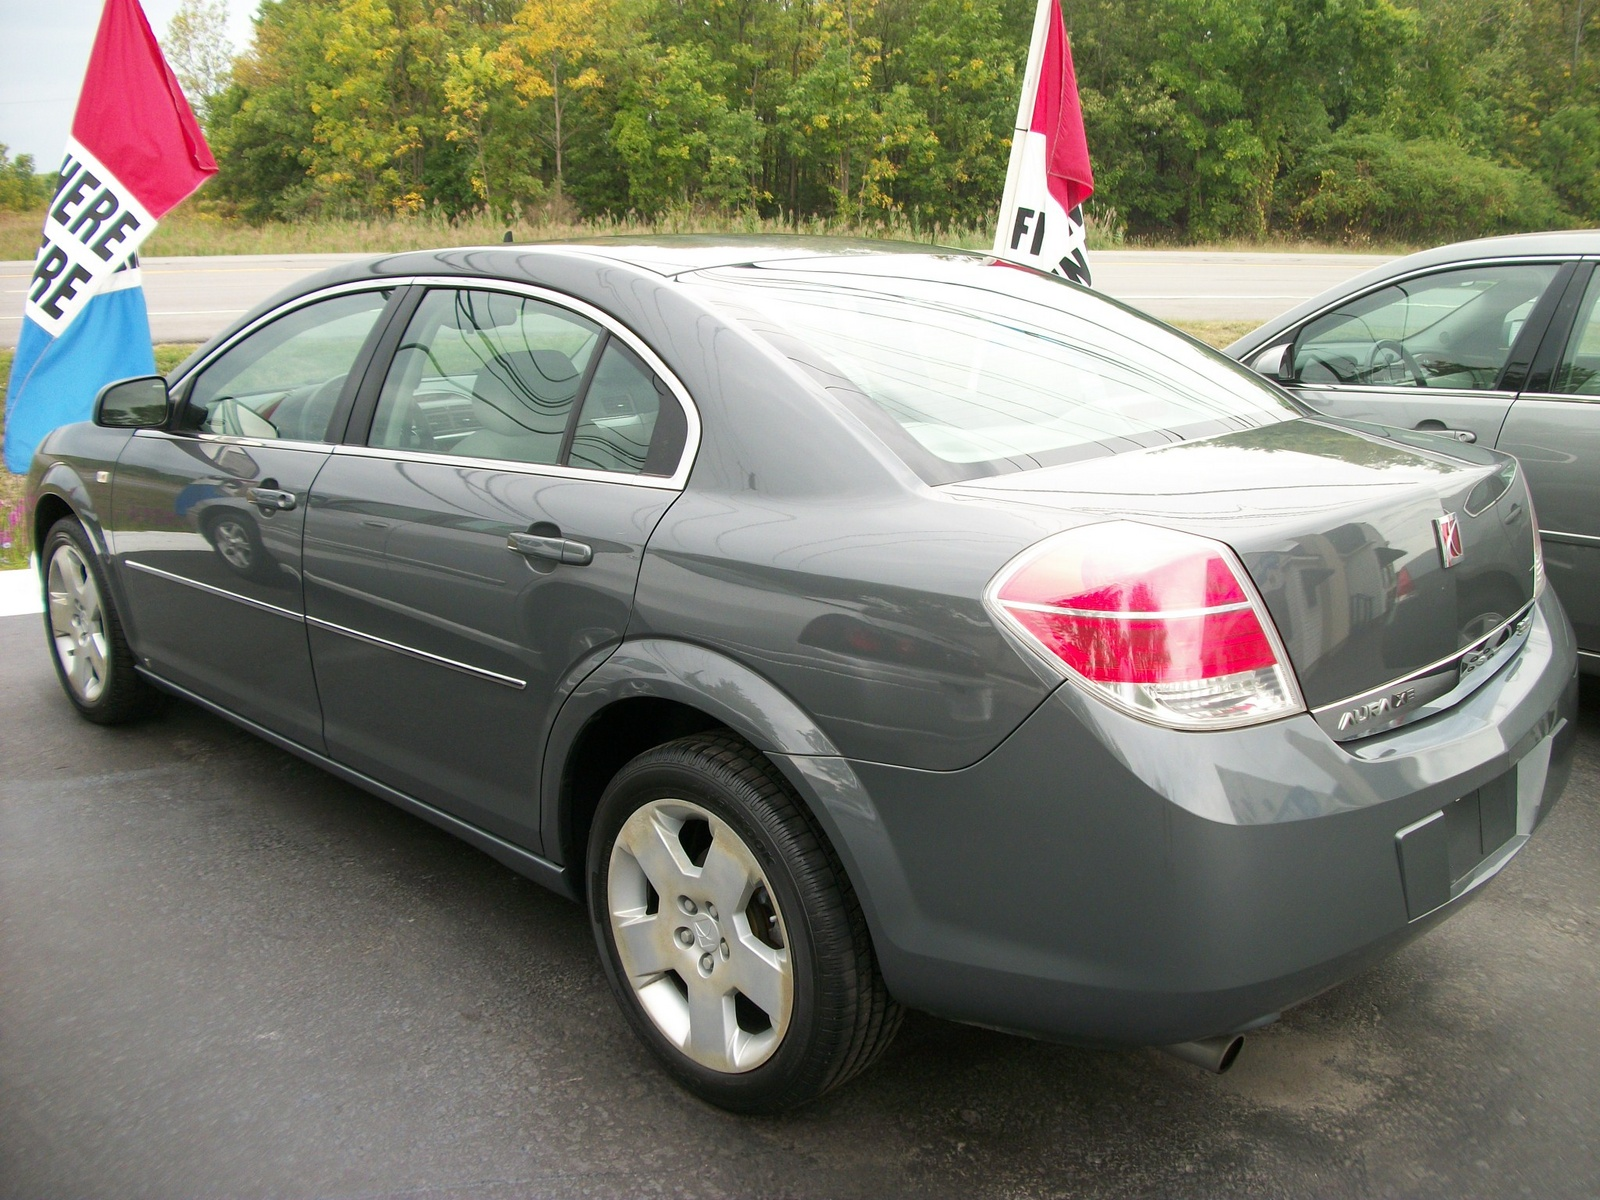 2008 saturn aura for sale cargurus autos post. Black Bedroom Furniture Sets. Home Design Ideas